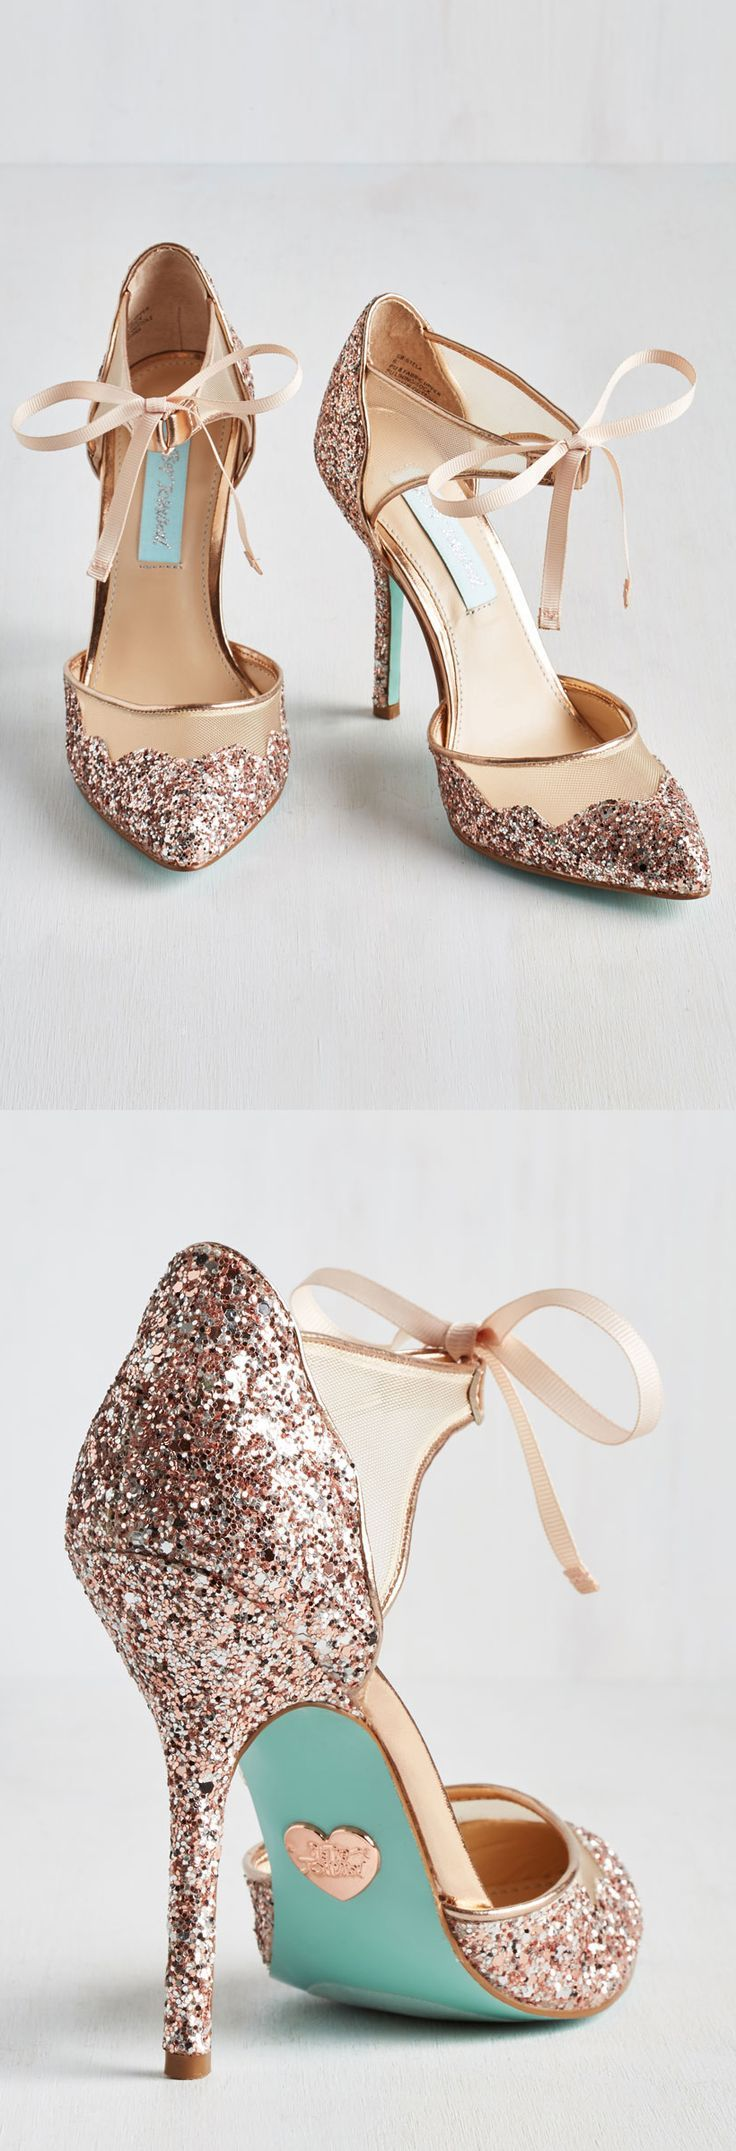 15 amazing gift ideas for her beautiful wedding and for Gold dress sandals for wedding